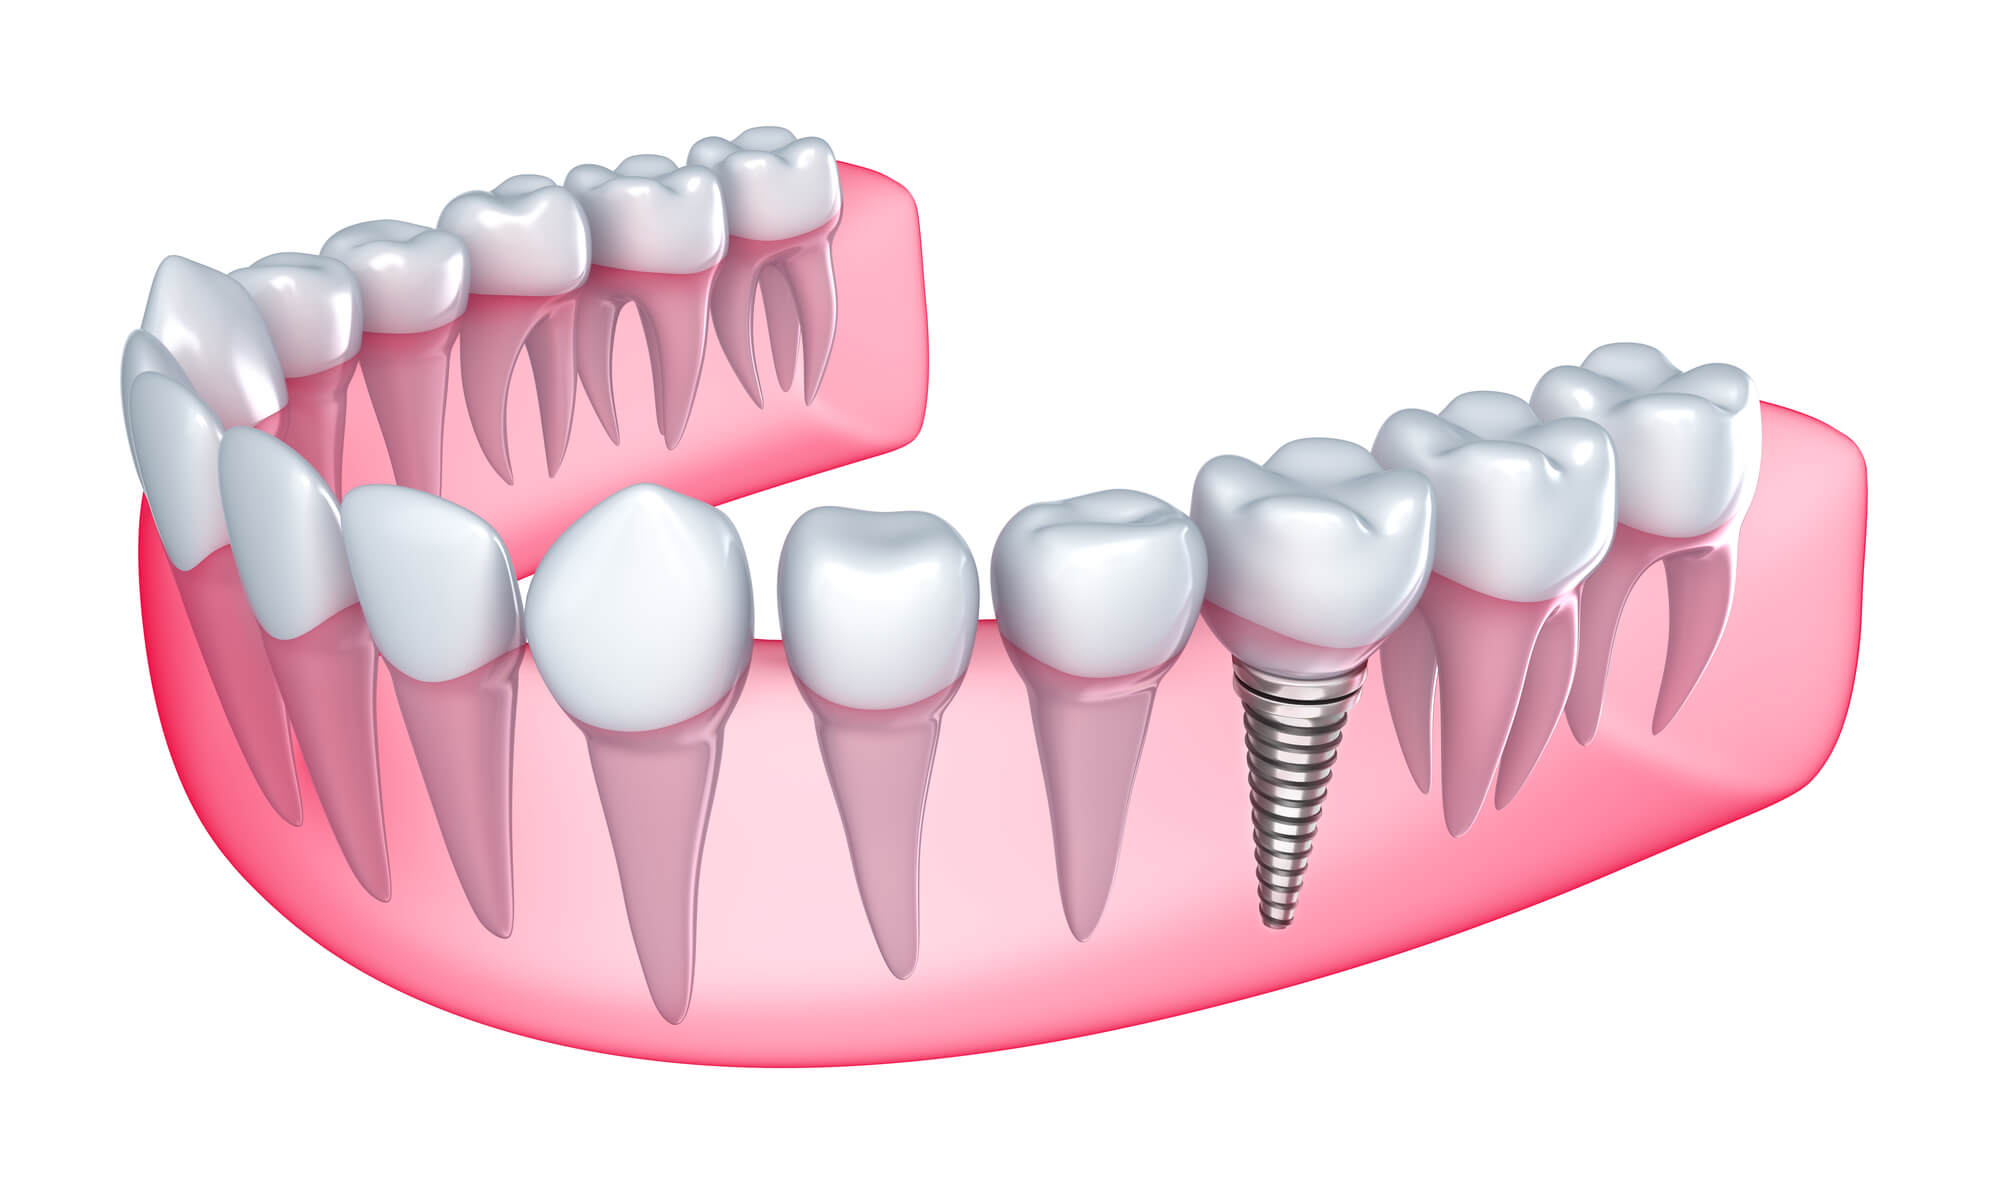 Where to Get Dental Implants Boynton Beach?